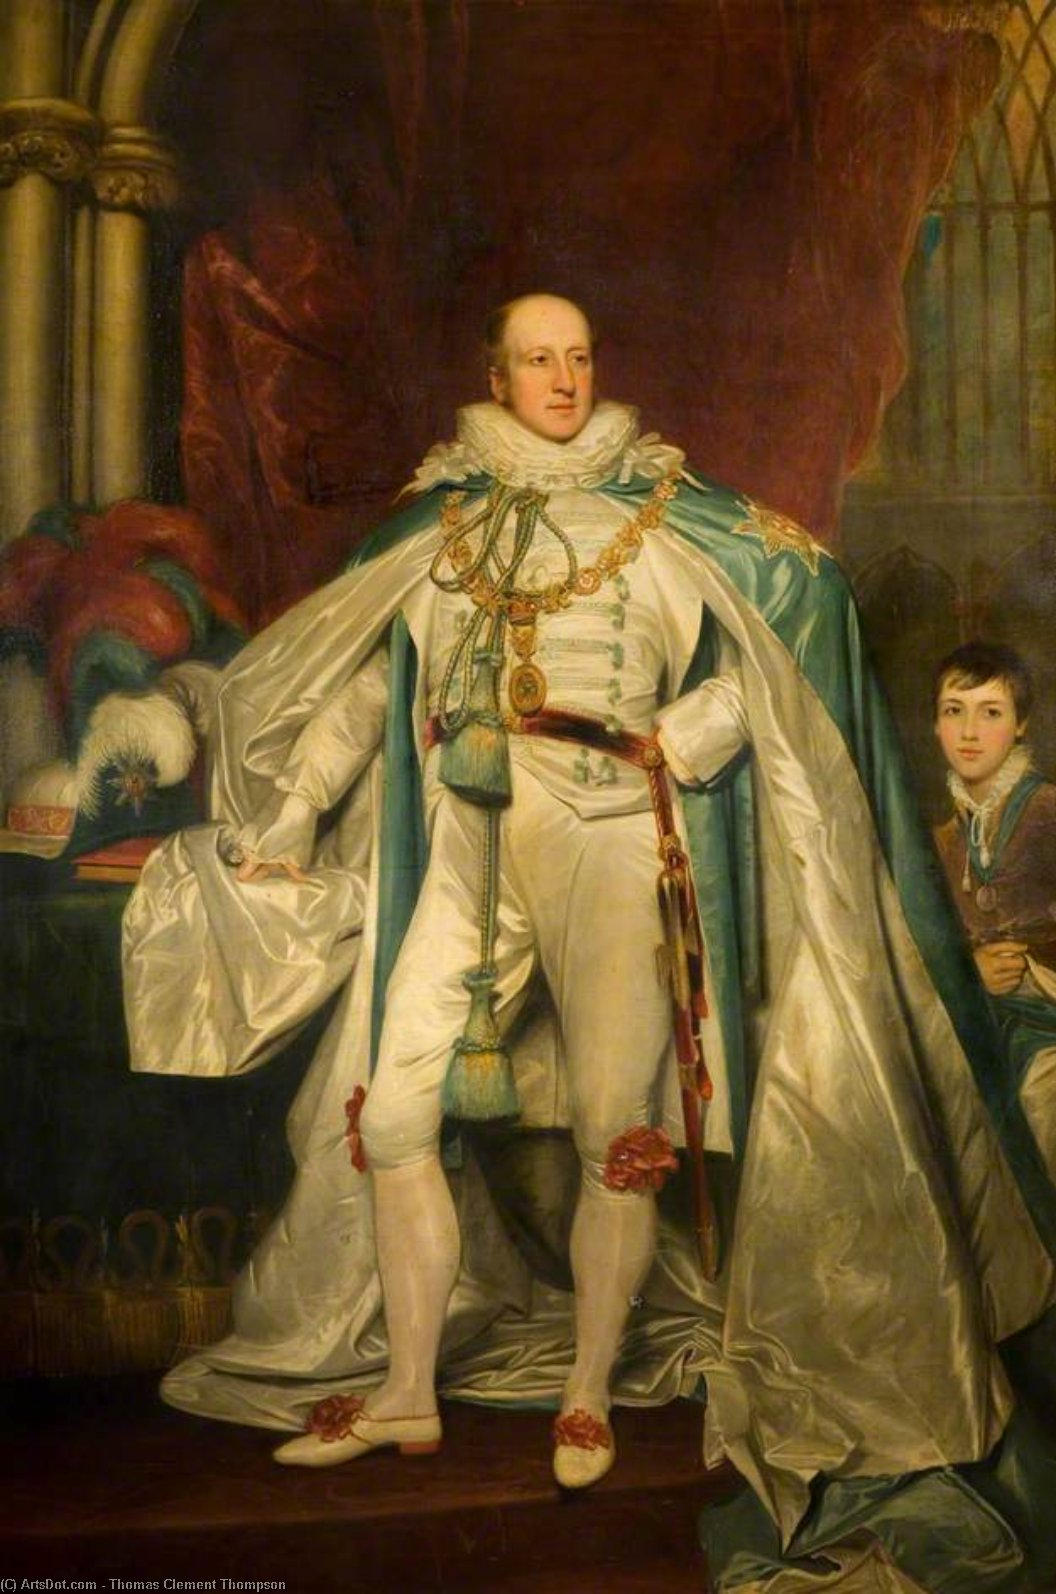 Charles Chetwynd by Thomas Clement Thompson | Art Reproduction | ArtsDot.com